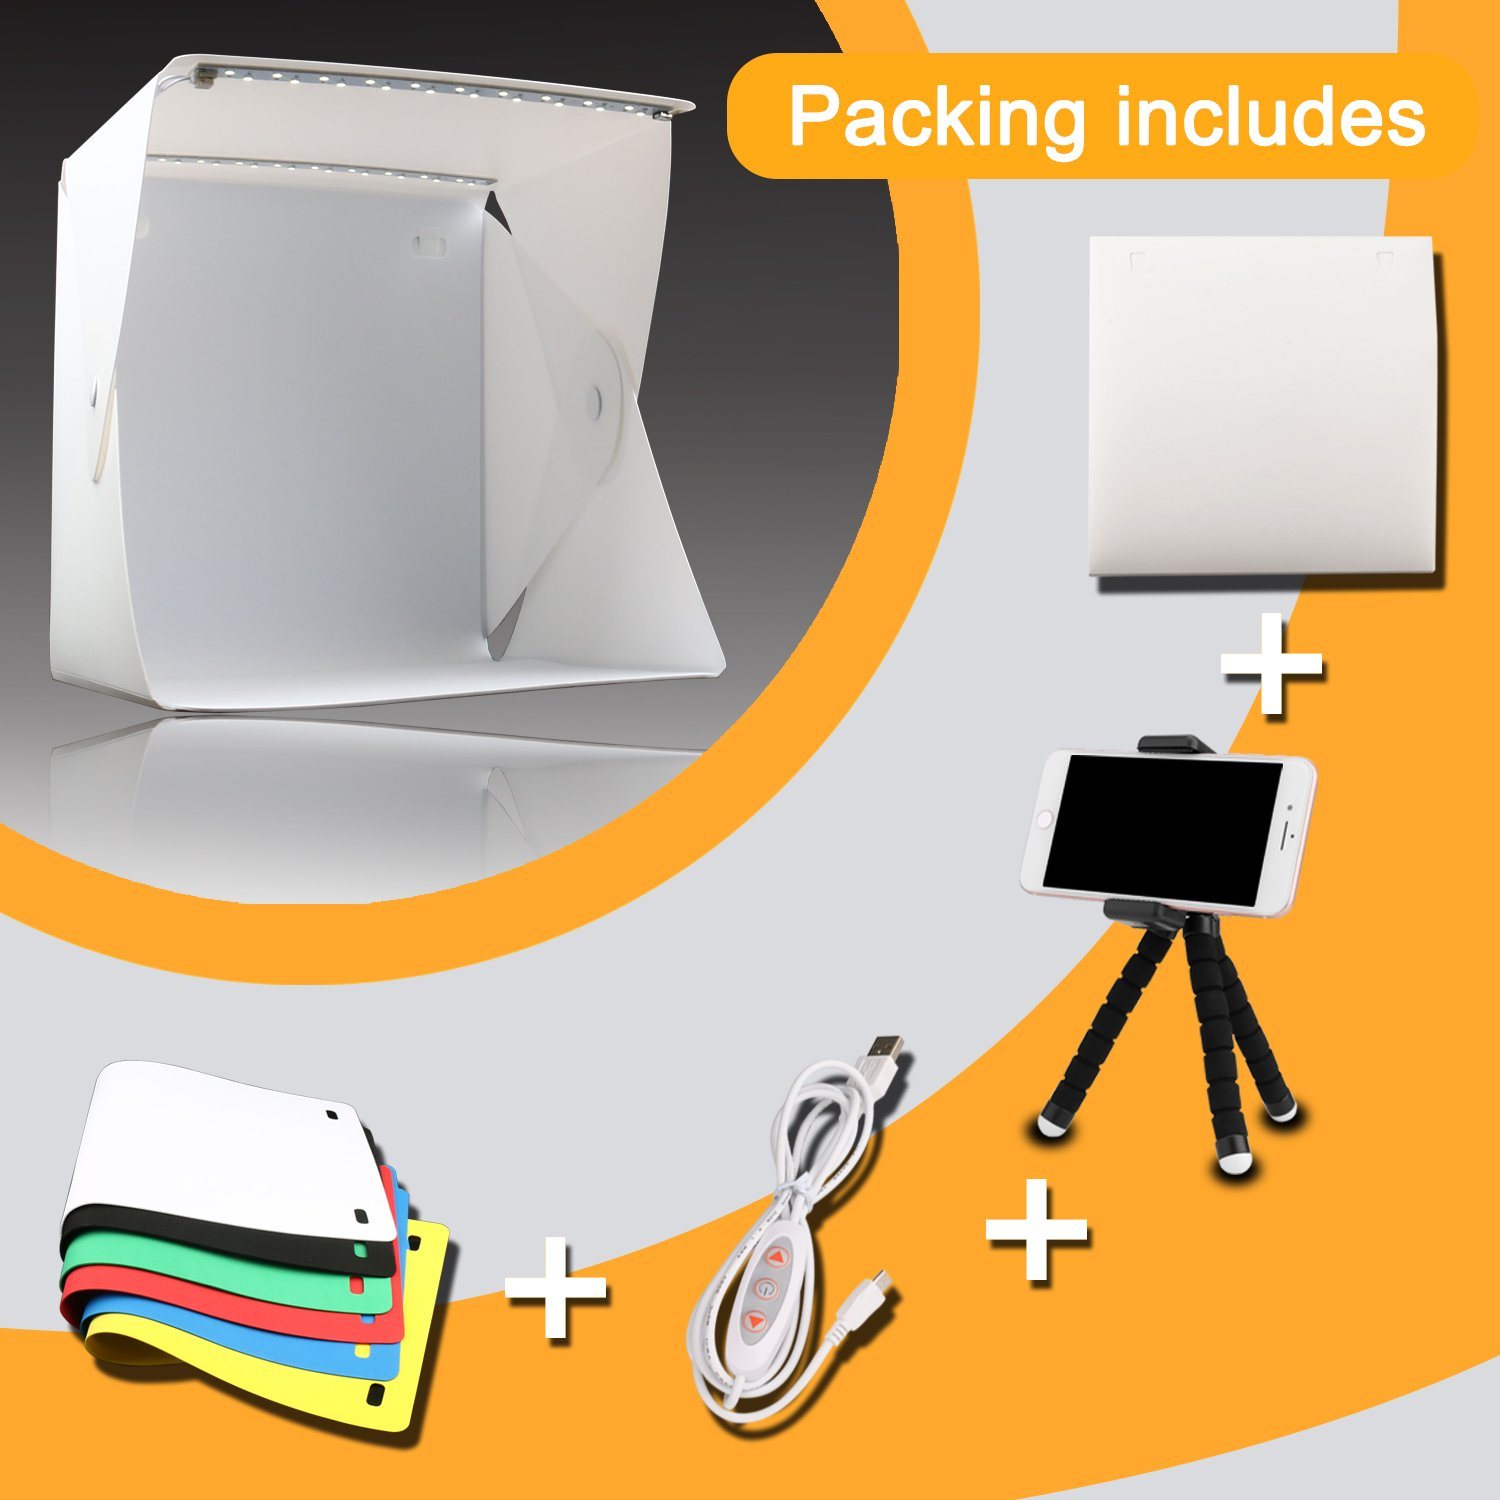 Donwell Portable Photo Studio Tent Light Box Folding Photography Shooting Kit with Adjustable LED Lights and 6 Colors Background New 2018 (Size: 9.8'' x 9.5'' x 9'') by DONWELL (Image #4)